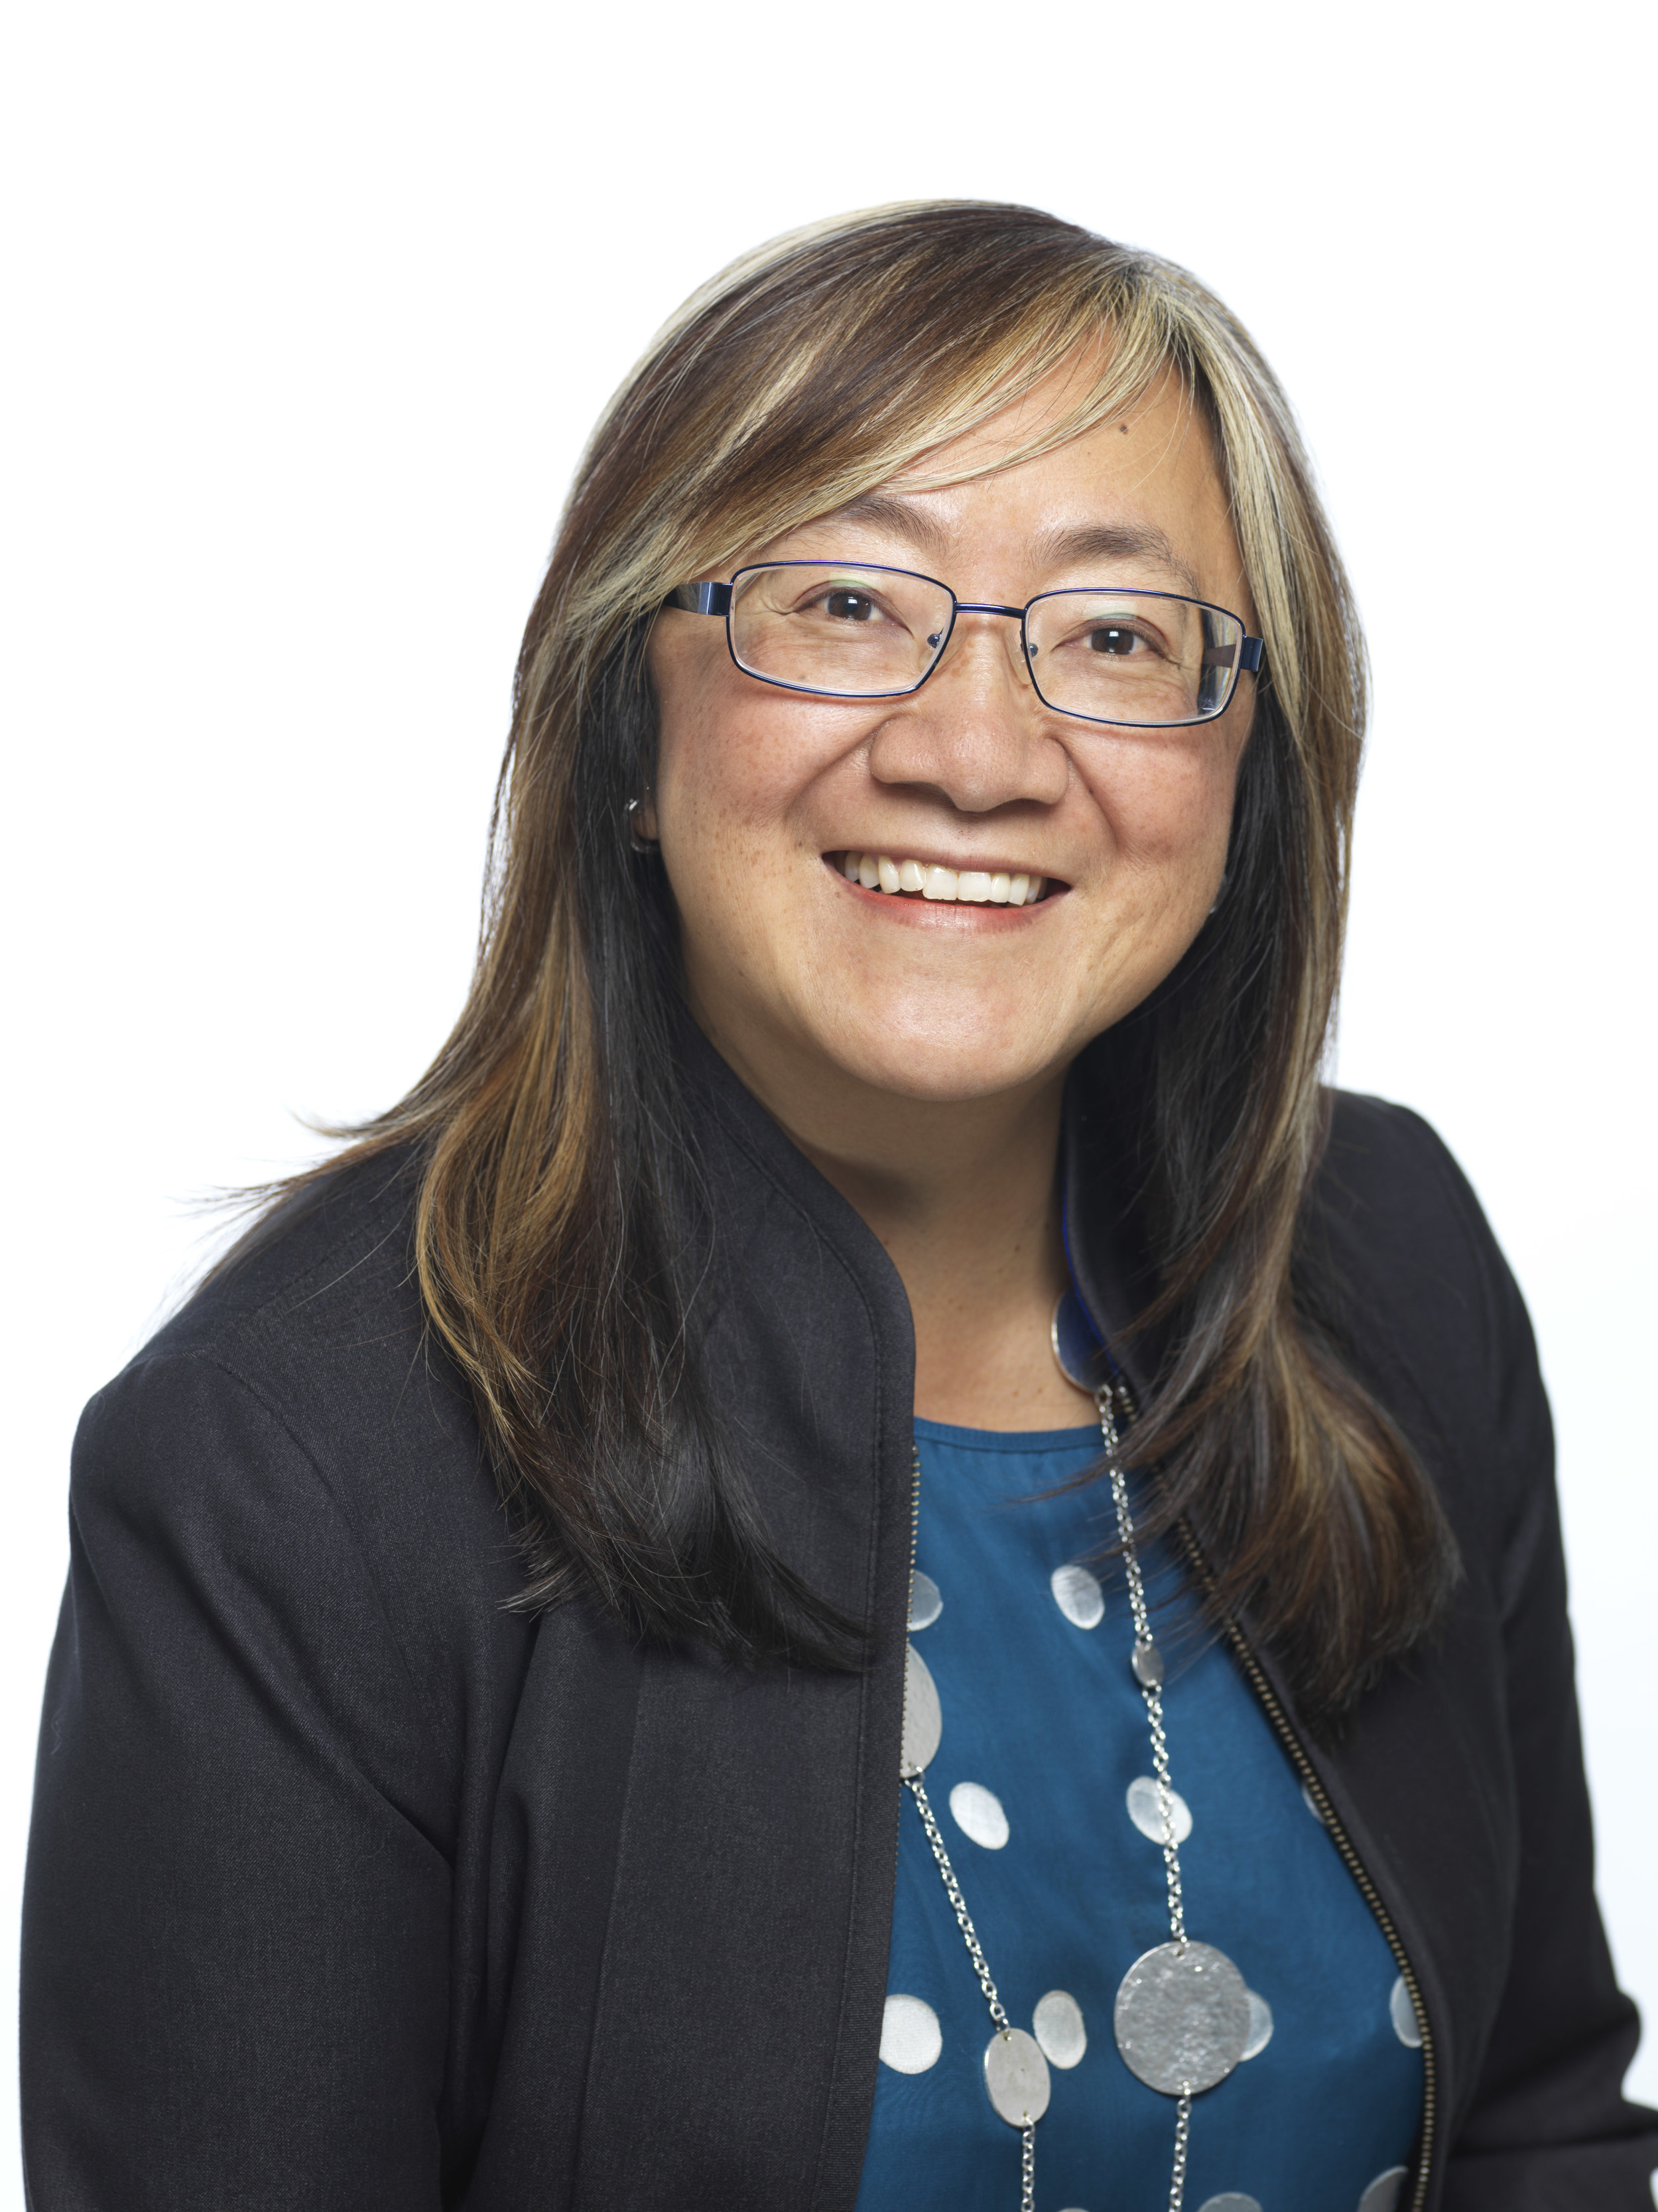 Patti Pon  is a veteran community and arts champion with an extensive track that includes leadership positions at the EPCOR CENTRE for the Performing Arts (now Arts Commons), Alberta Performing Arts Stabilization Fund, and Alberta Theatre Projects, among others. She serves on the board of The Calgary Foundation and on a committee for the Calgary Stampede. She was a founding board member of the Asian Heritage Foundation (Southern Alberta), served on the steering committee for imagineCalgary, and was a member of the JUNO Executive Host Committee and the Olympic Bid Exploration Committee.